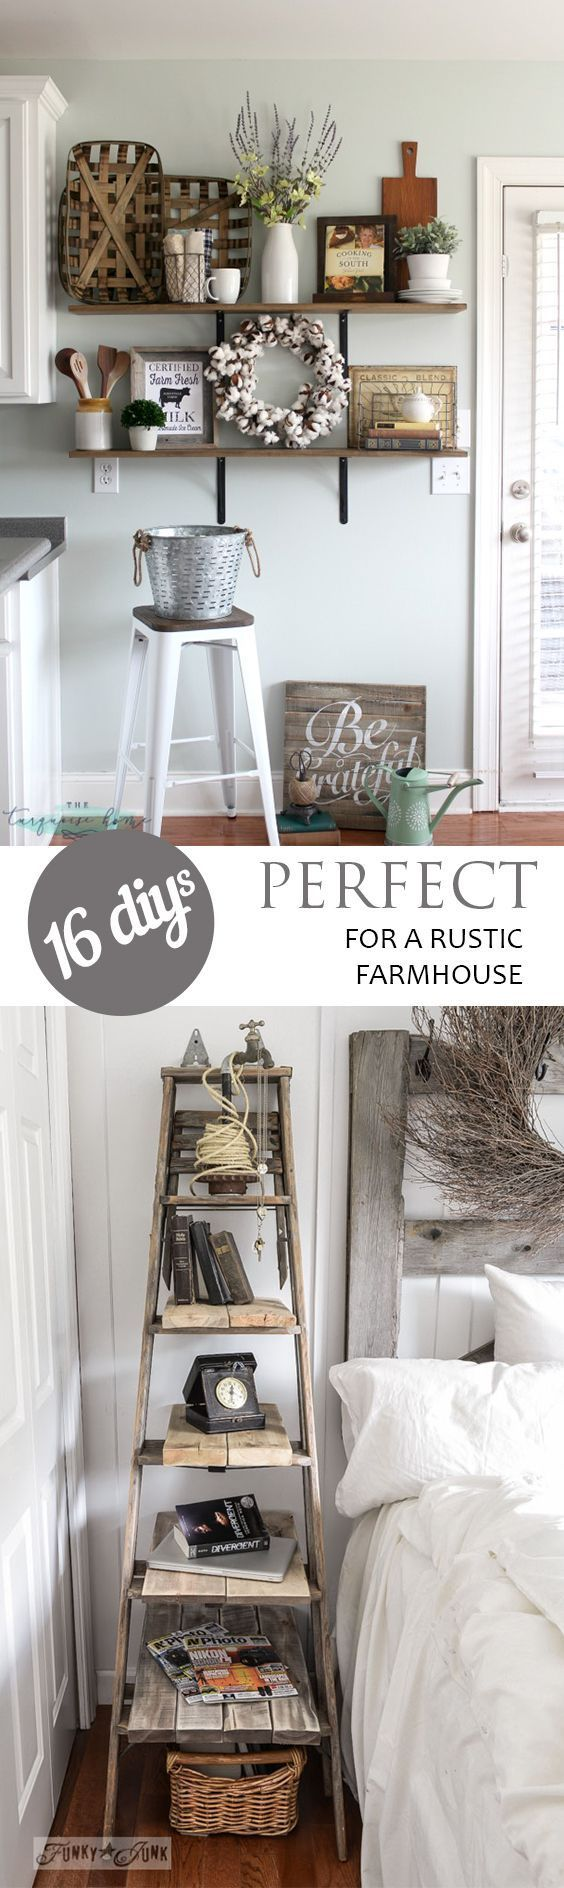 16 DIYu0027s Perfect For A Rustic Farmhouse   DIY Rustic Farmhouse Decor, DIY  Home Decor